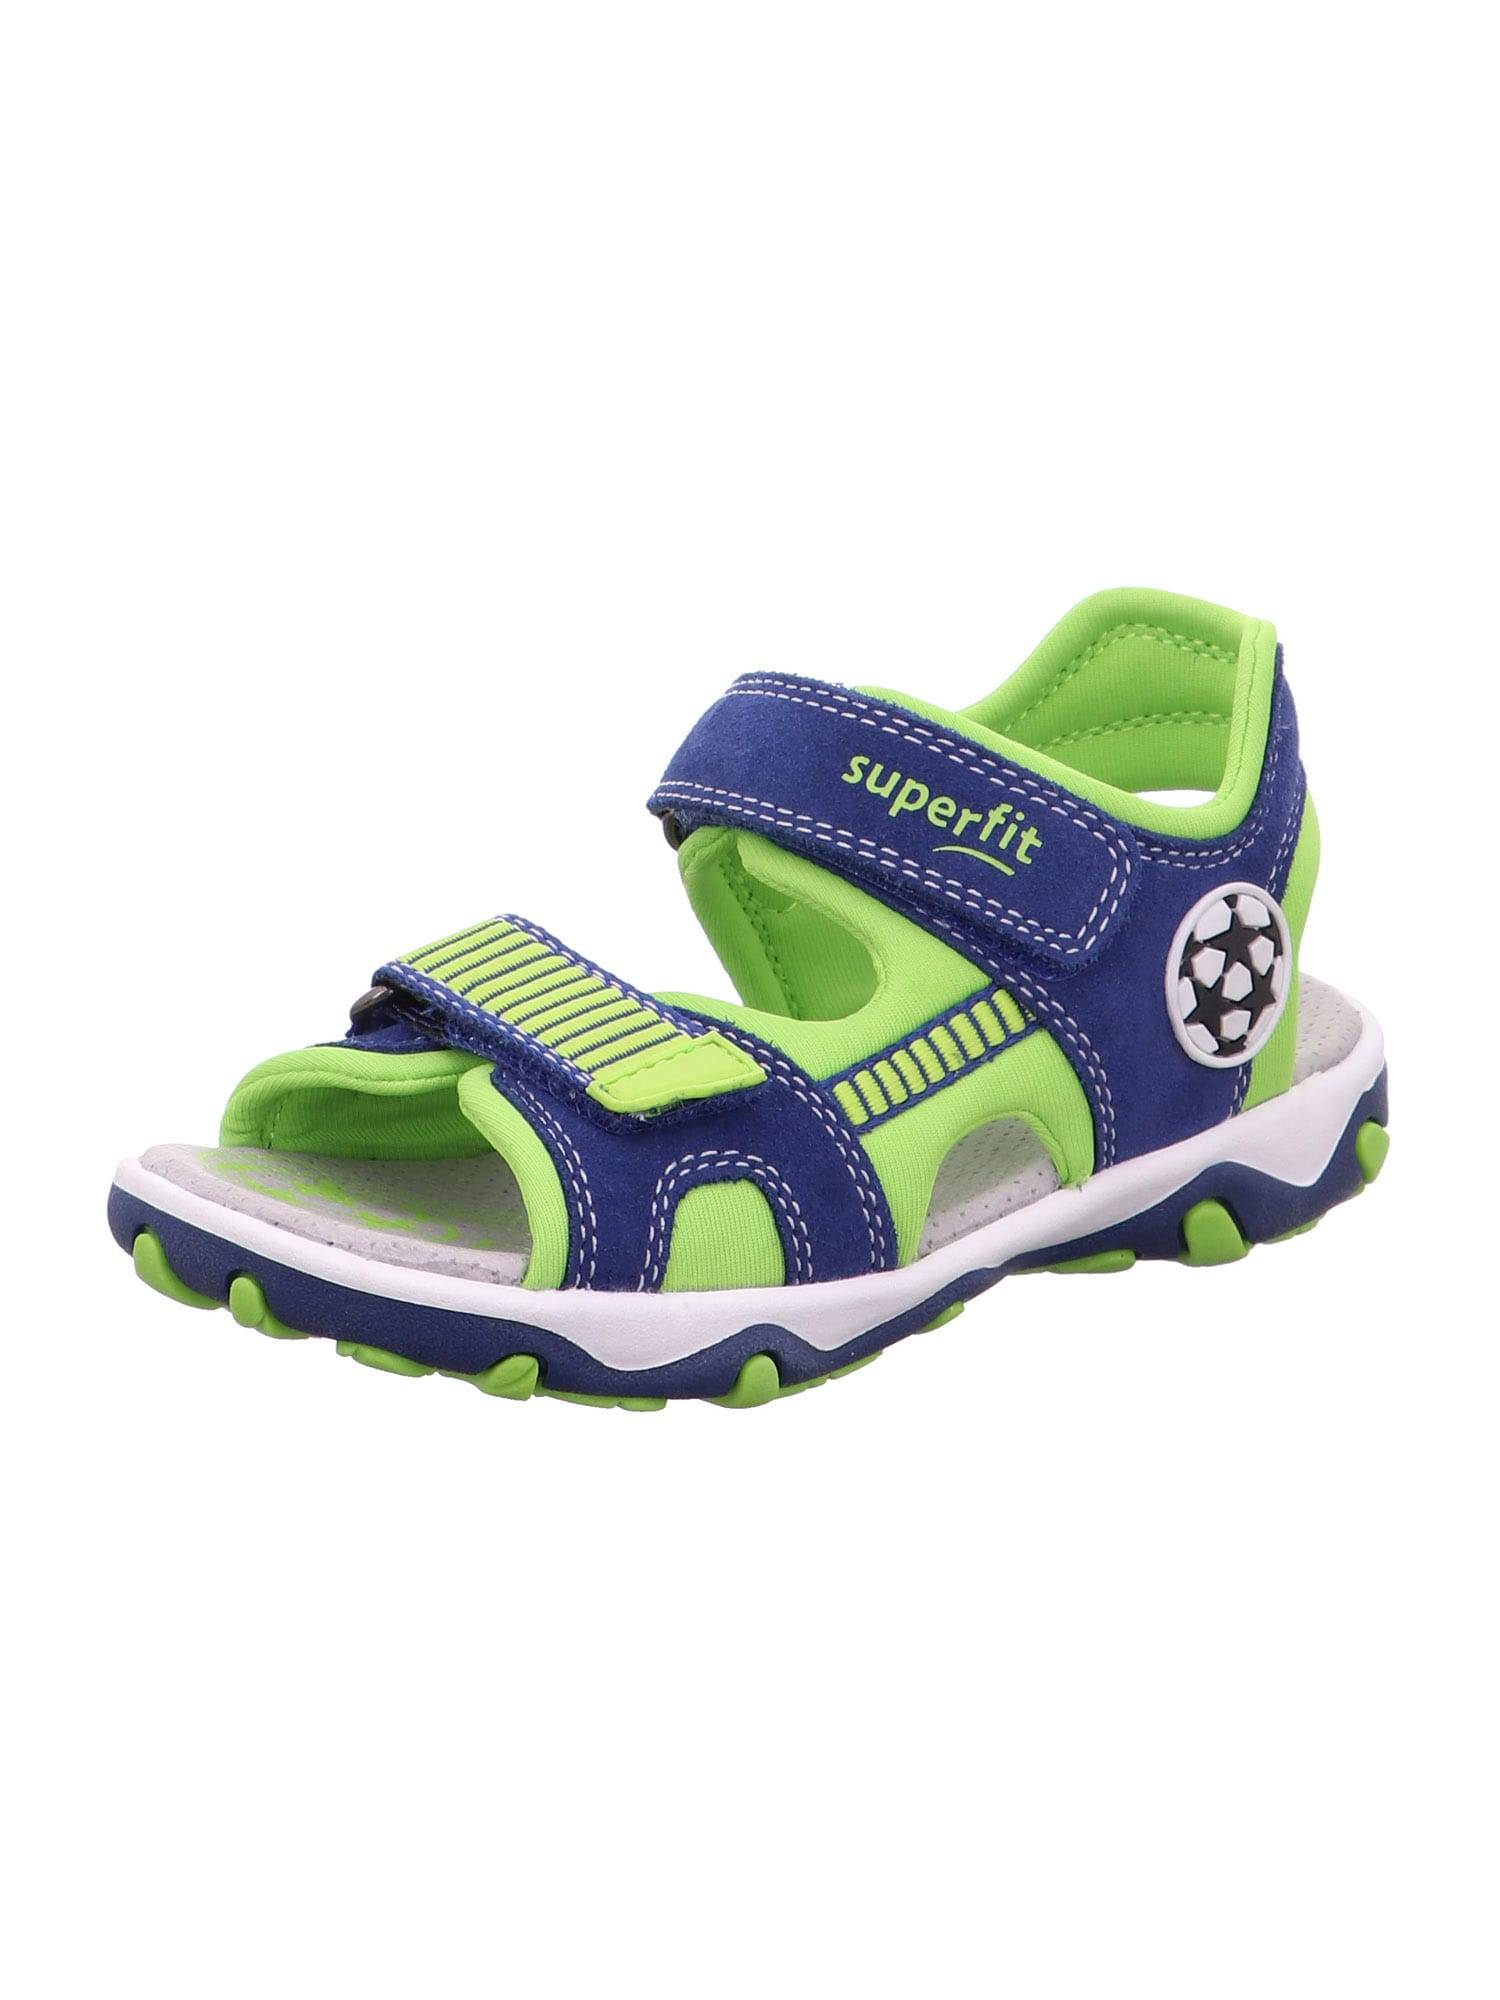 SUPERFIT Chaussures ouvertes 'MIKE'  - Vert, Bleu - Taille: 30 - boy